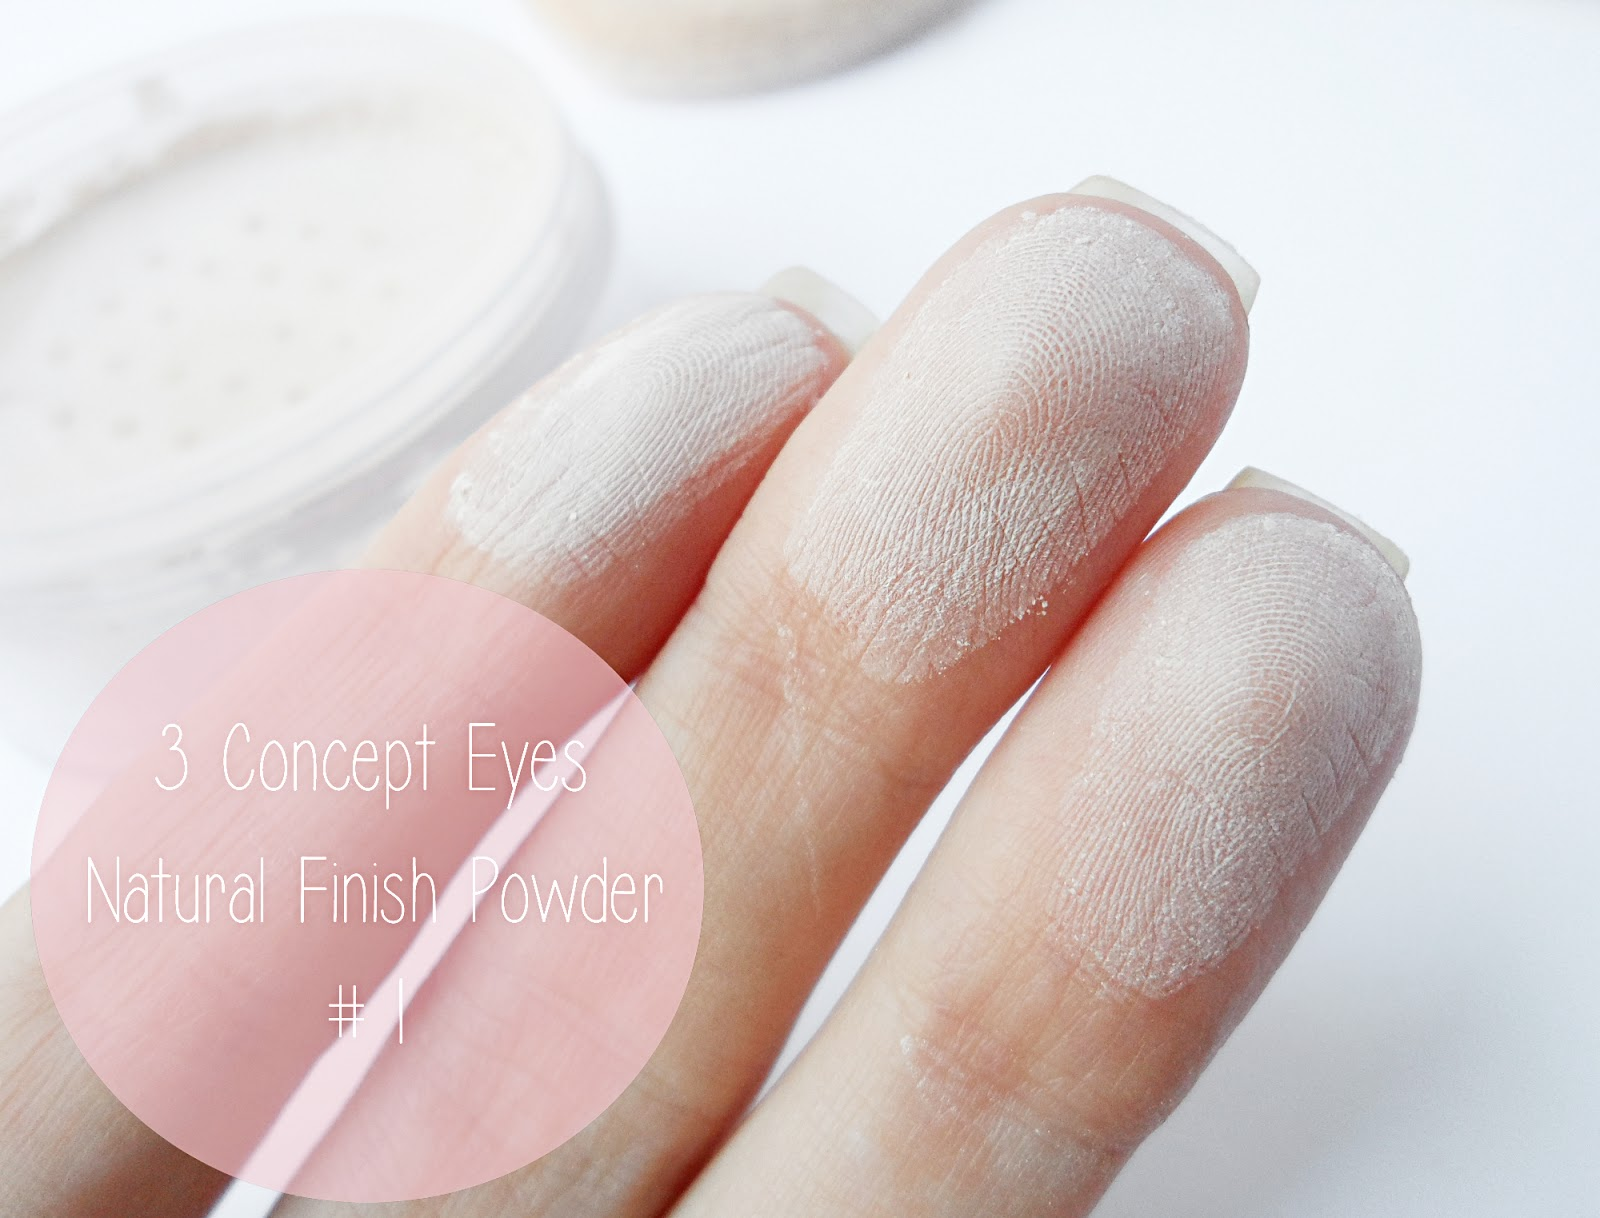 3CE e concept eyes style by nanda makeup review blogger liz breygel swatches  natural translucent powder